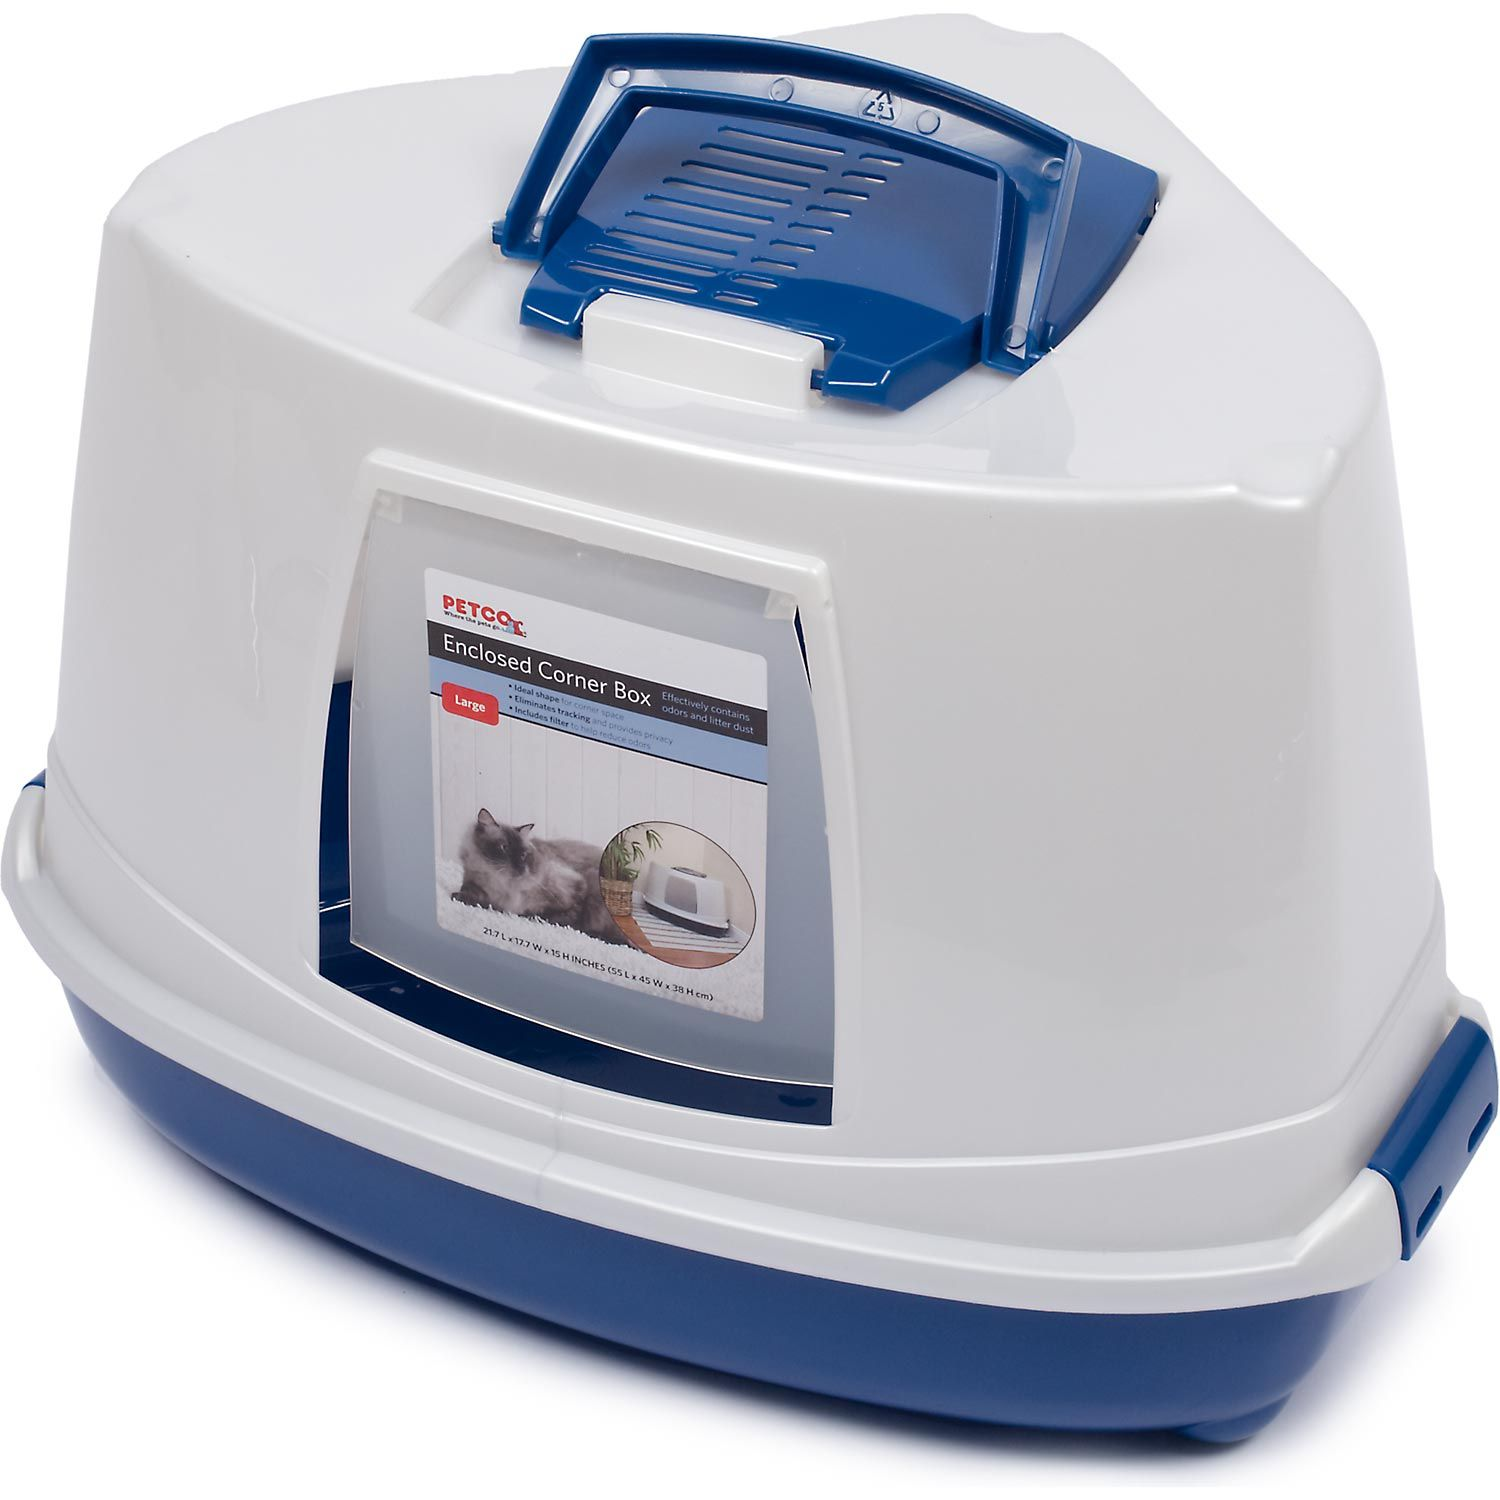 Petco Enclosed Corner Cat Litter Box Cat litter box